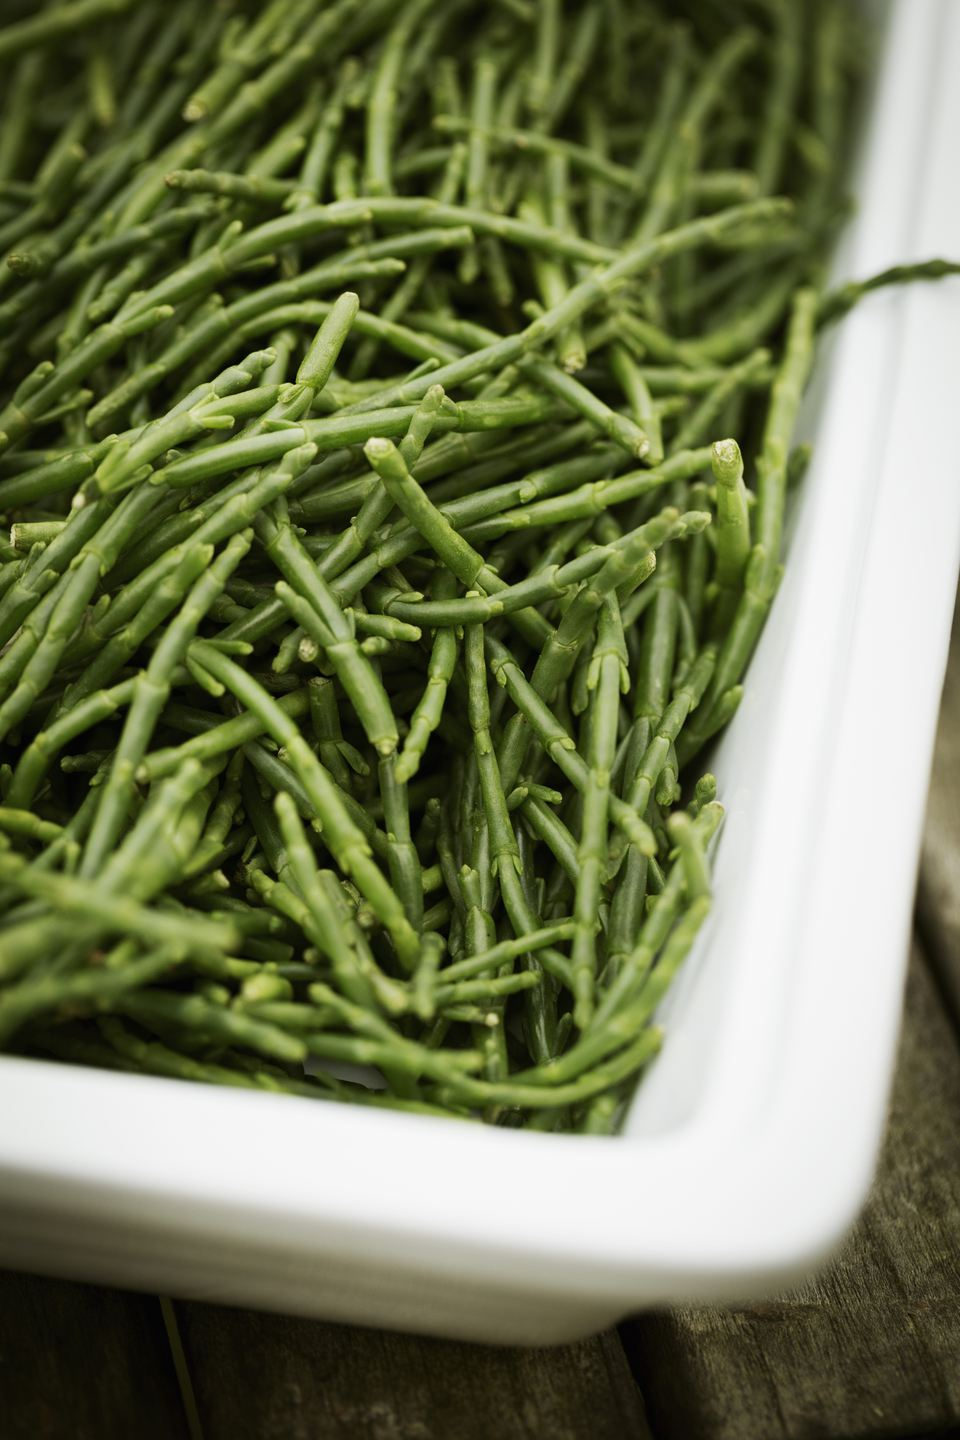 High angle view of a tray of samphire.